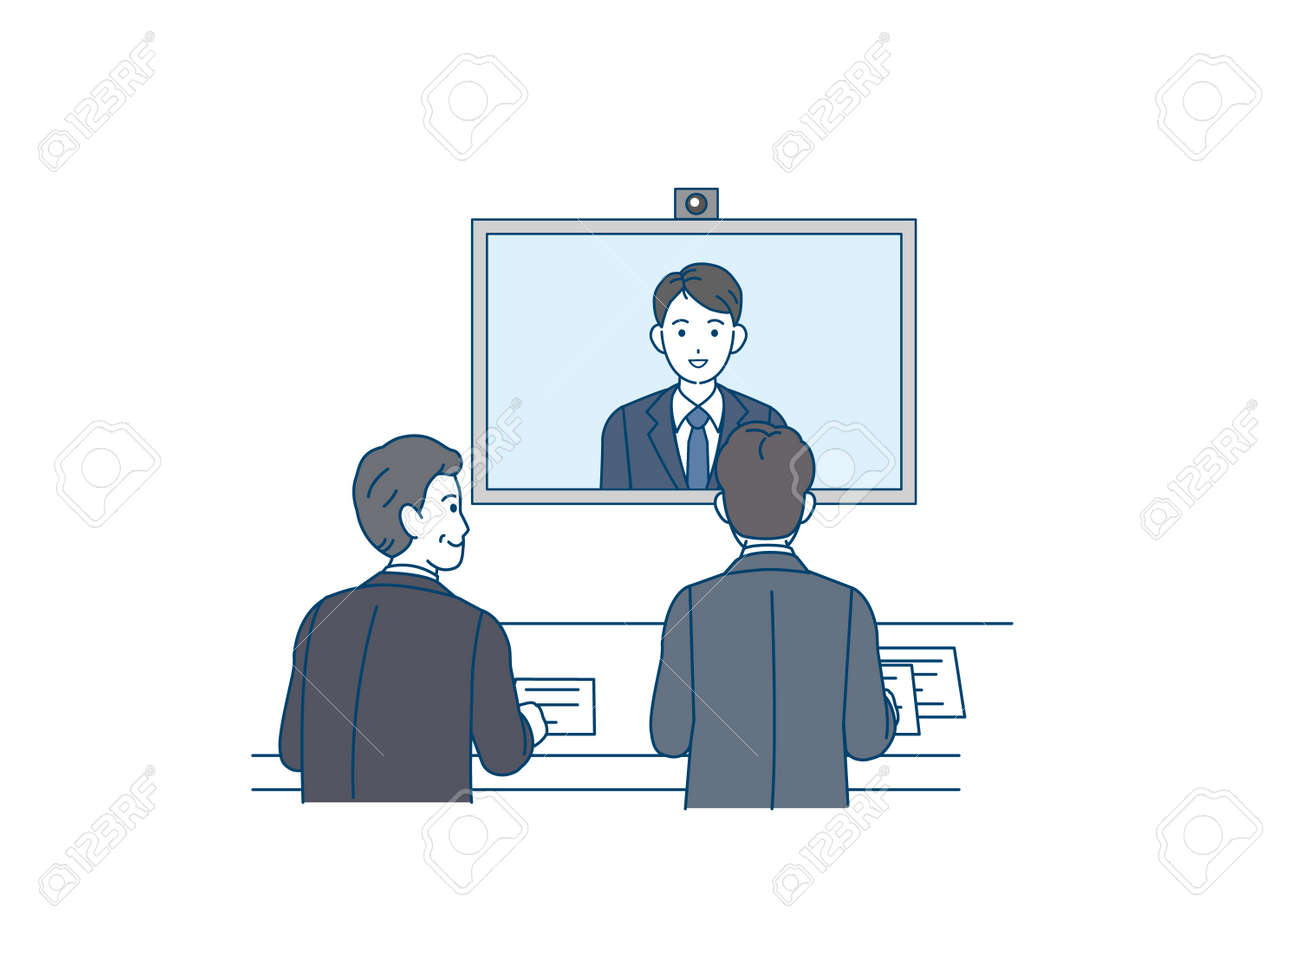 It is an illustration of a Remote interviewer. - 167778358